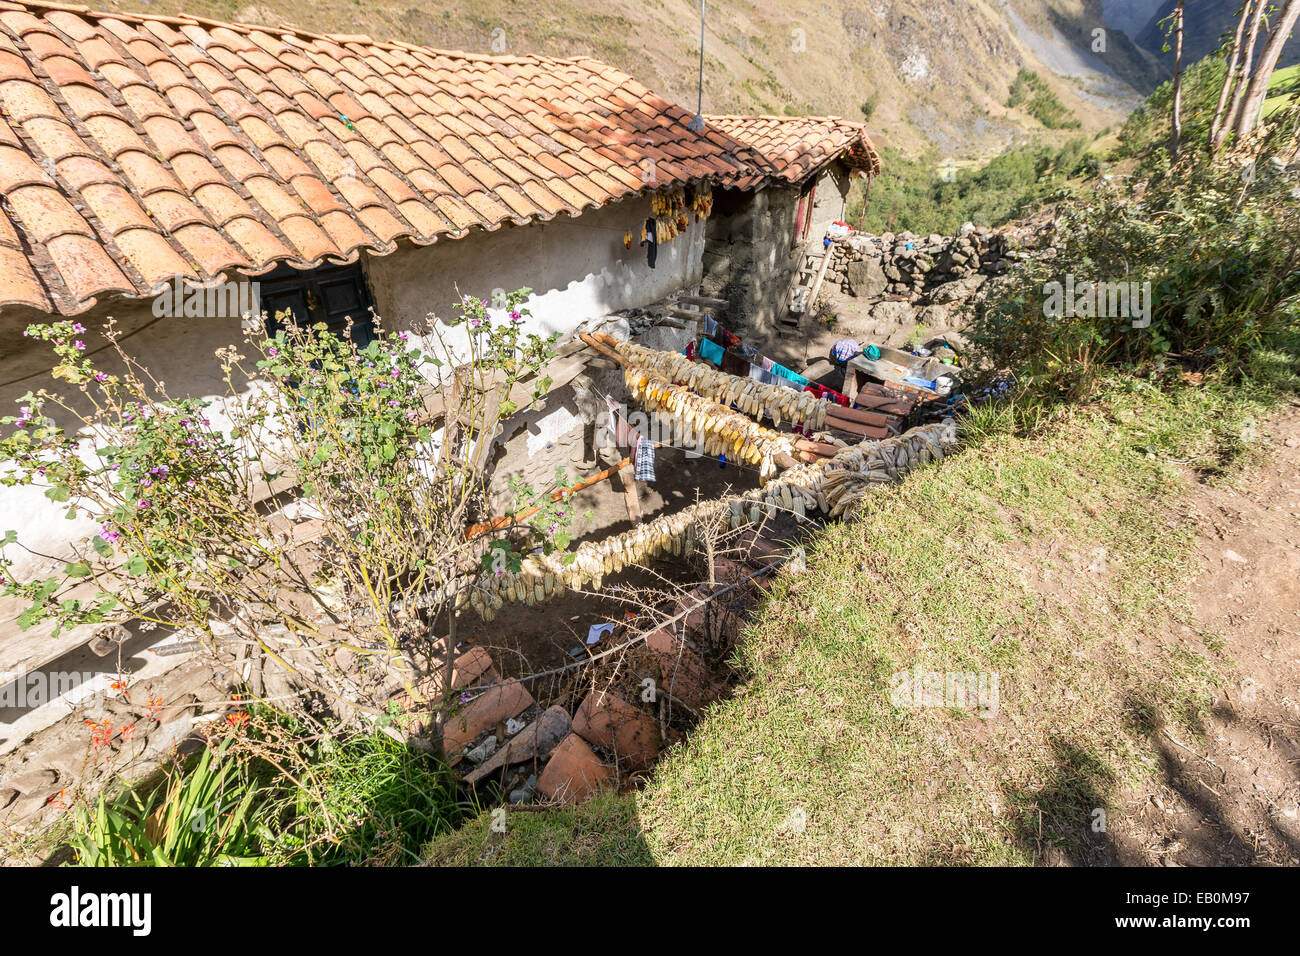 Peruvian house on Santa Cruz trek, Cordillera Blanca, Andes, Peru, South America - Stock Image